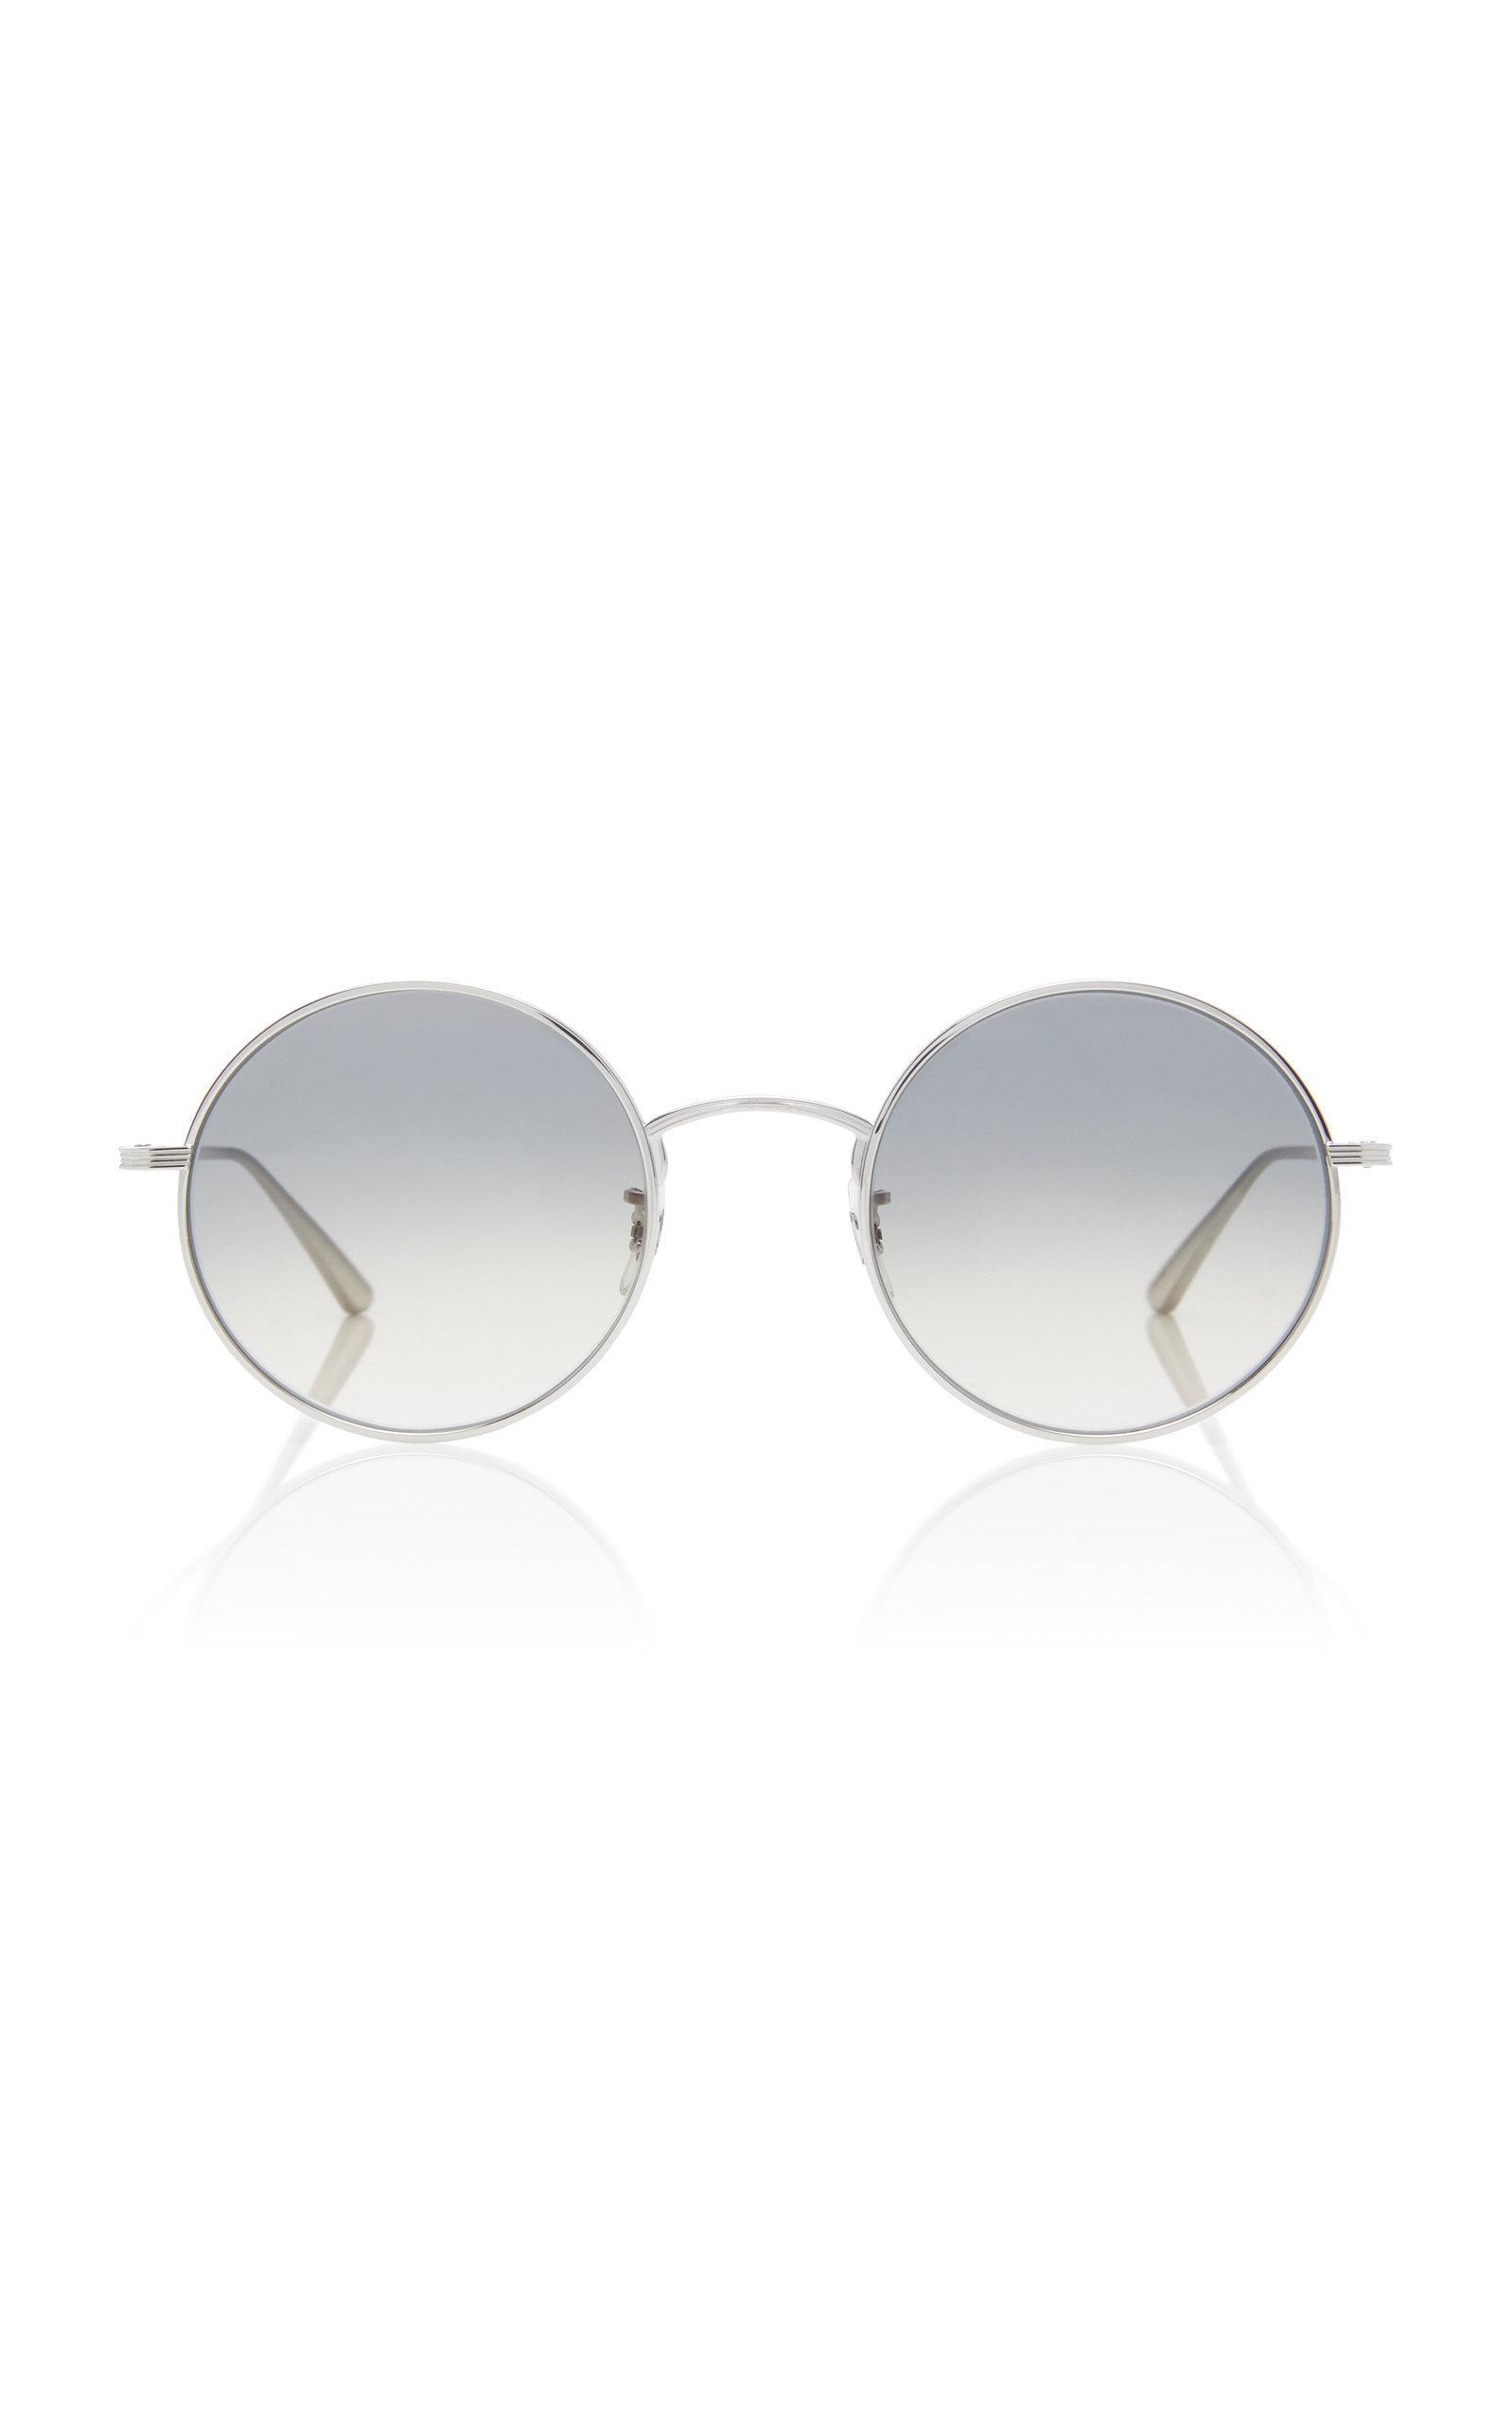 7fe4935164c Oliver Peoples After Midnight Round Metal Sunglasses In Silver ...